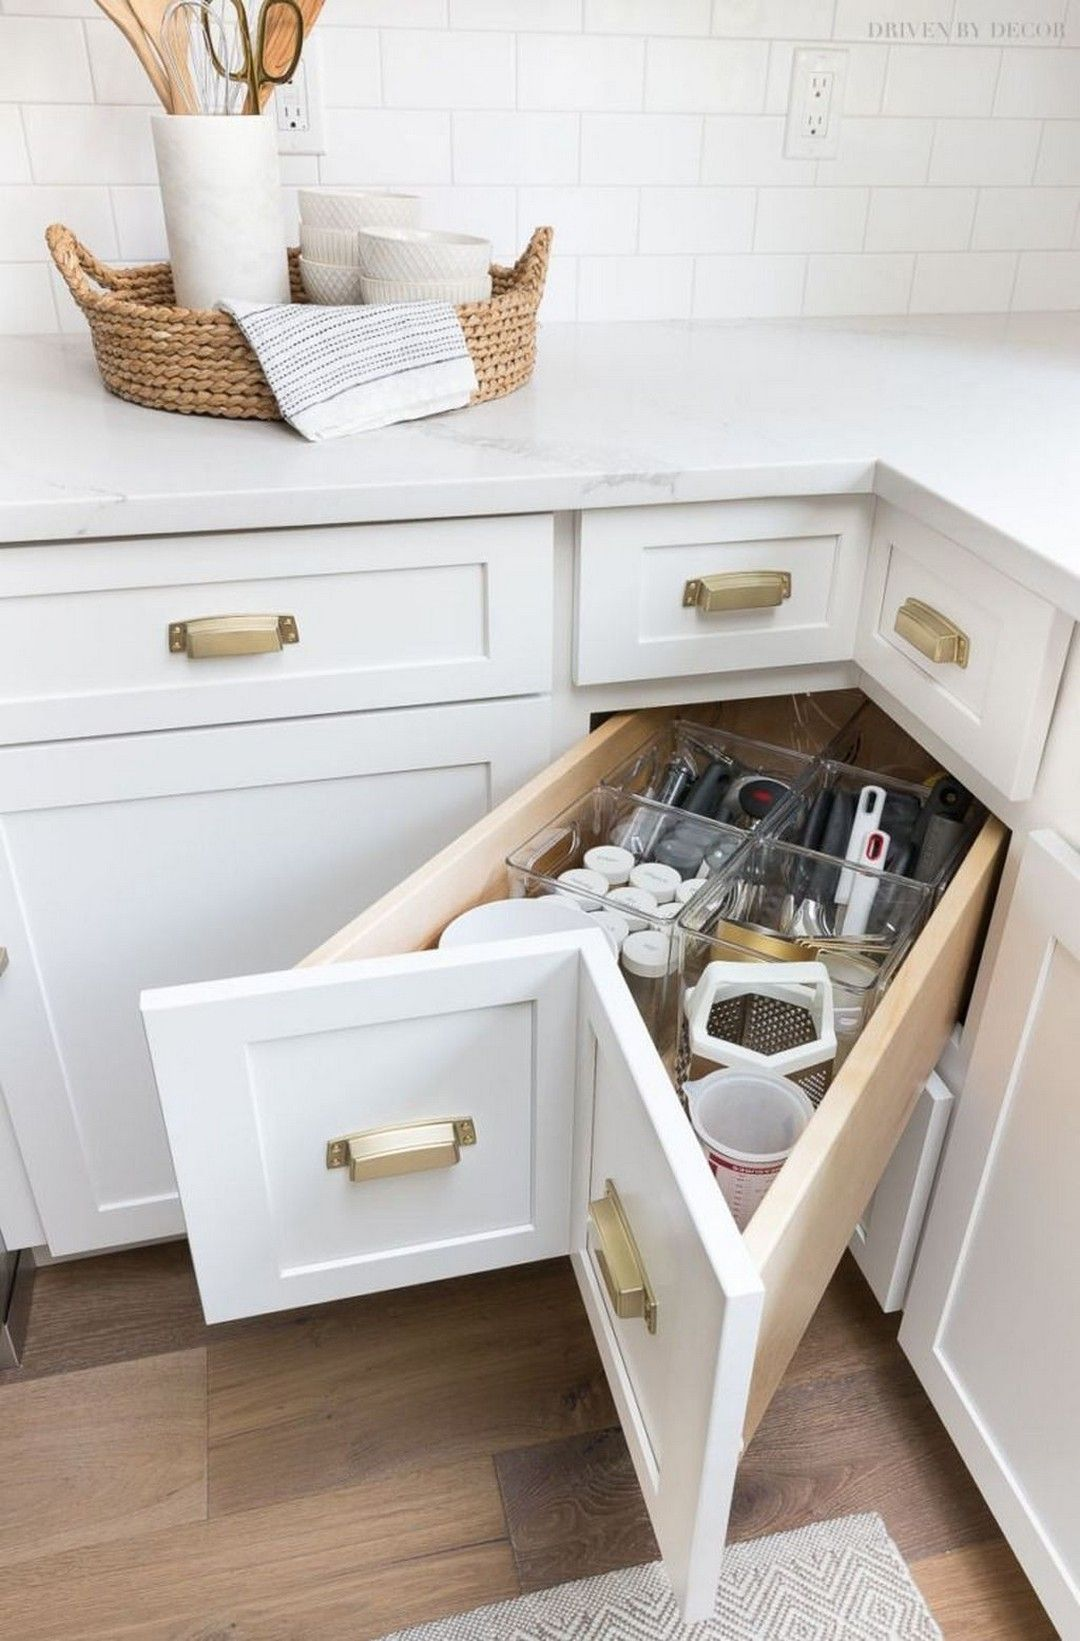 24 Amazing Corner Cabinet Storage Ideas For The Best Kitchen Small Kitchen Storage Kitchen Cabinet Storage Kitchen Remodel Small #small #corner #cabinets #for #living #room